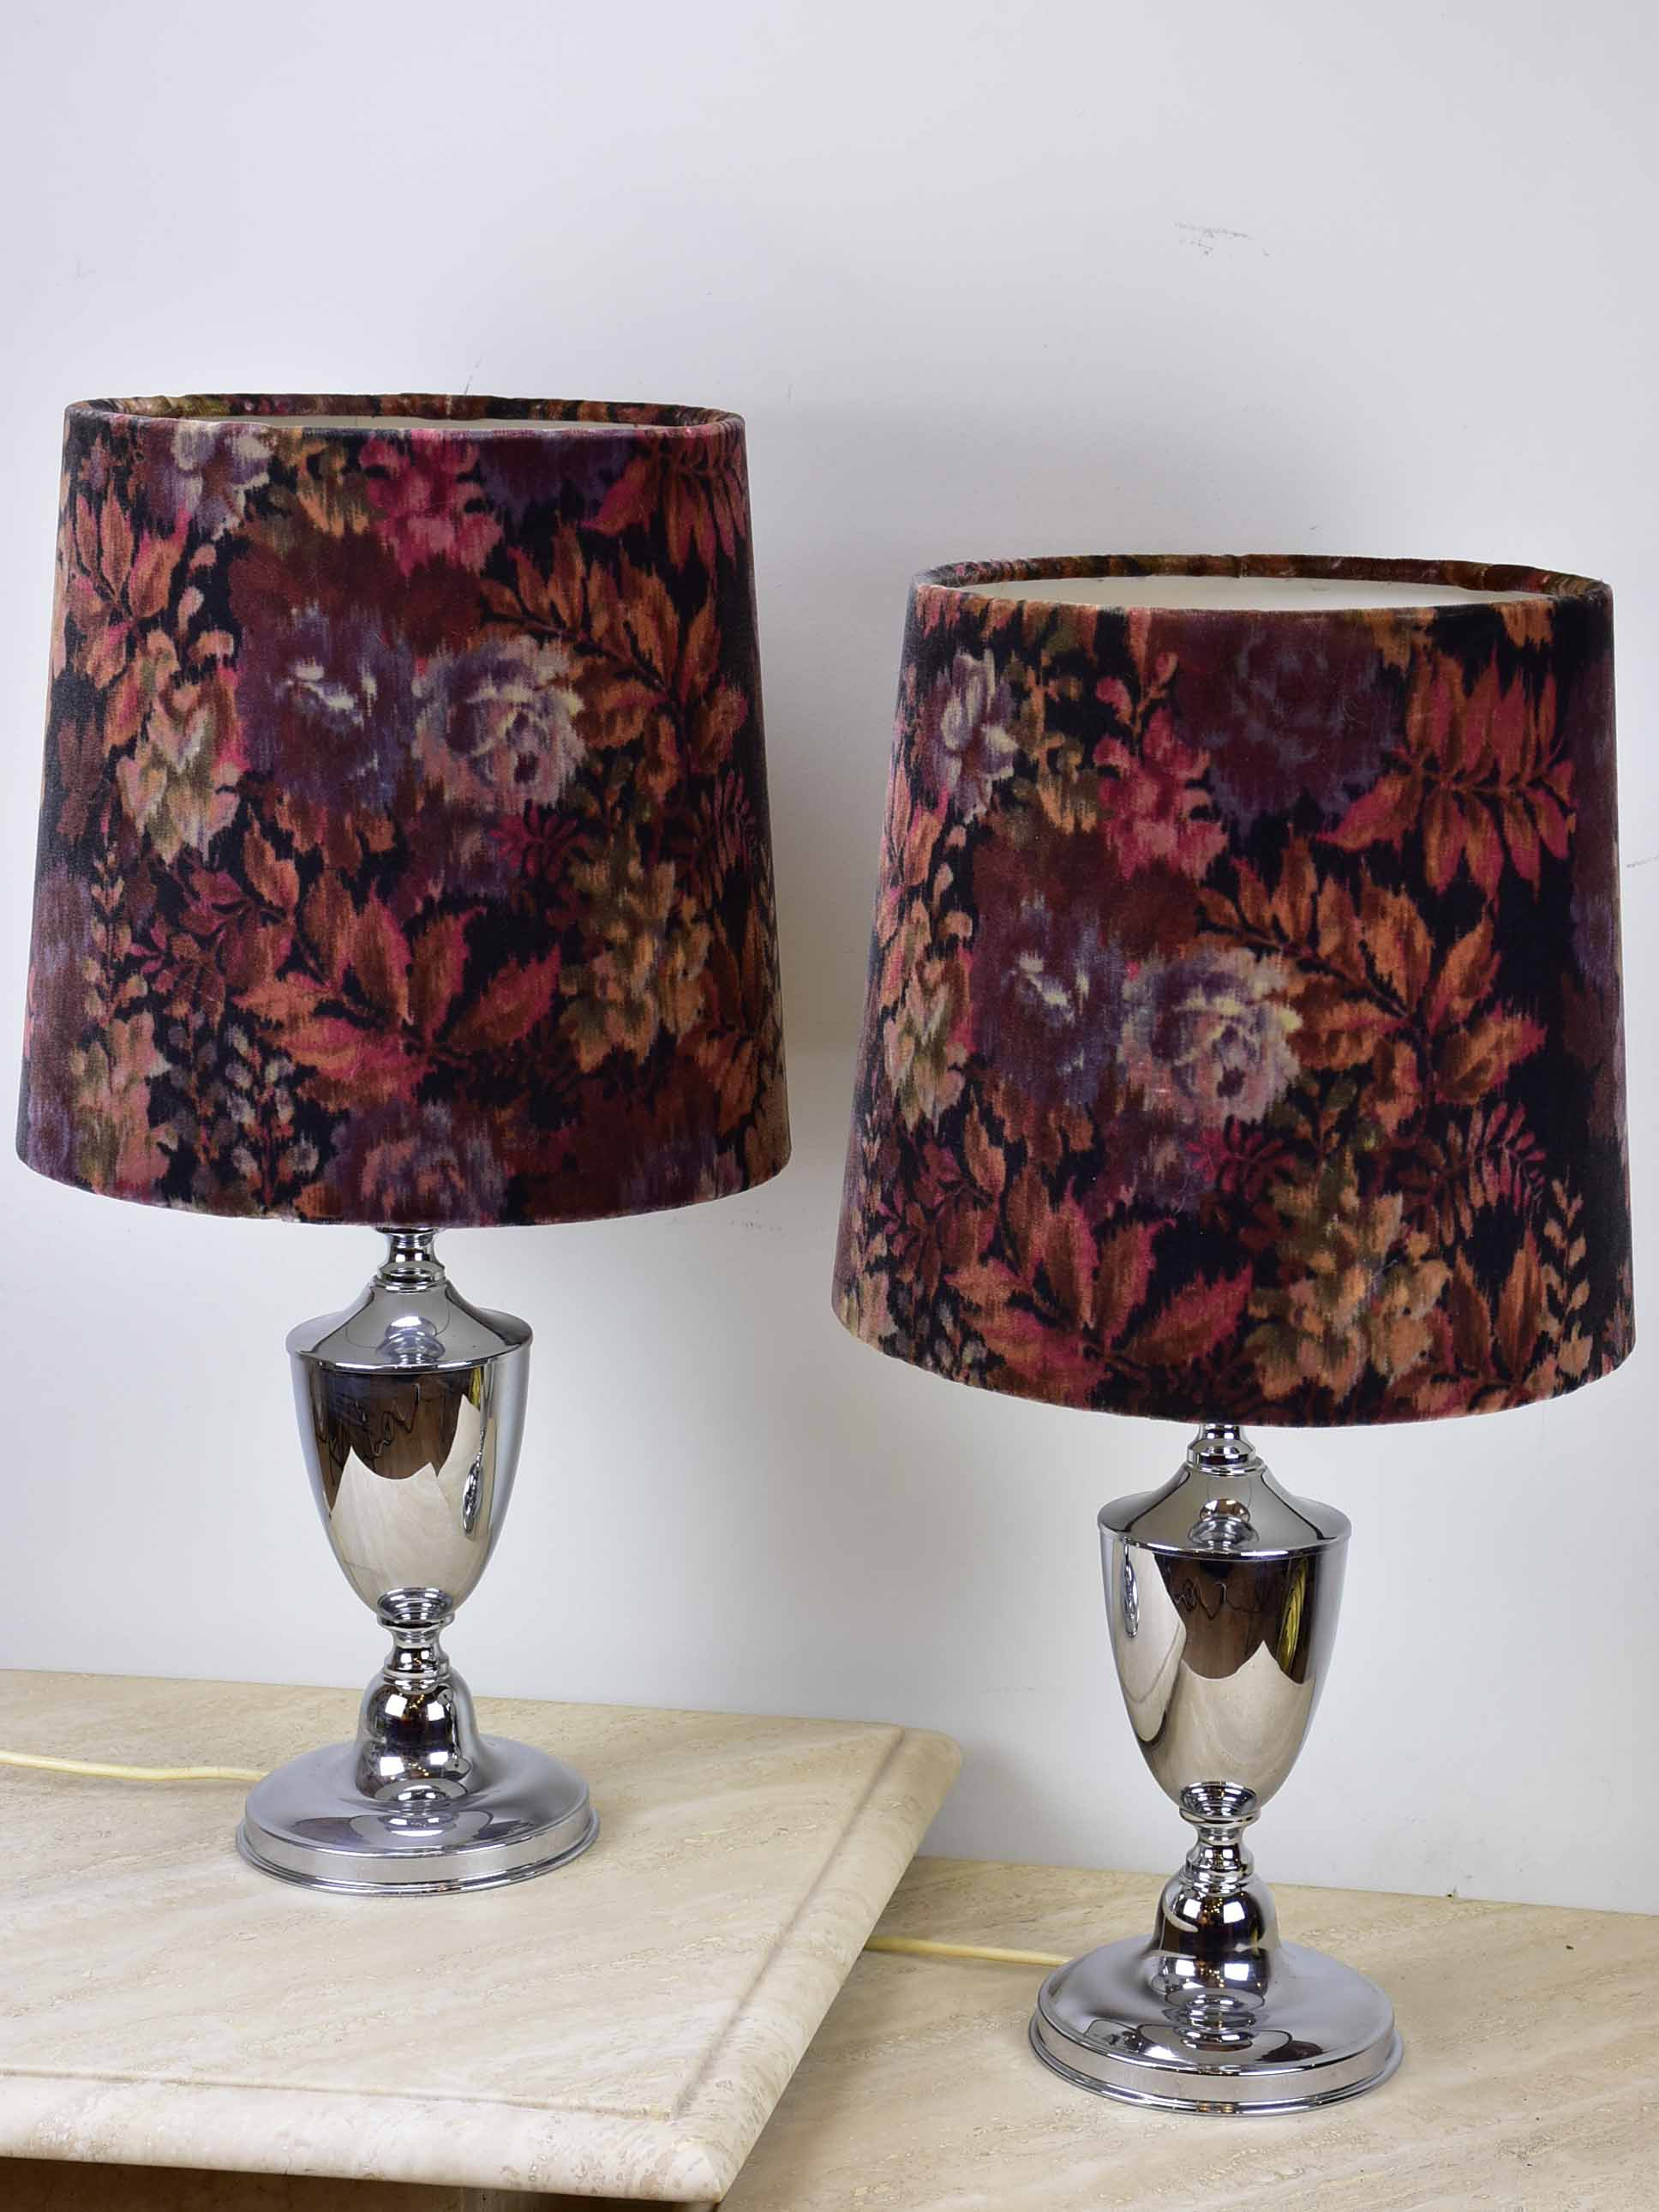 Pair of 1970's Ligne Roset lamps with velour Liberty lampshades